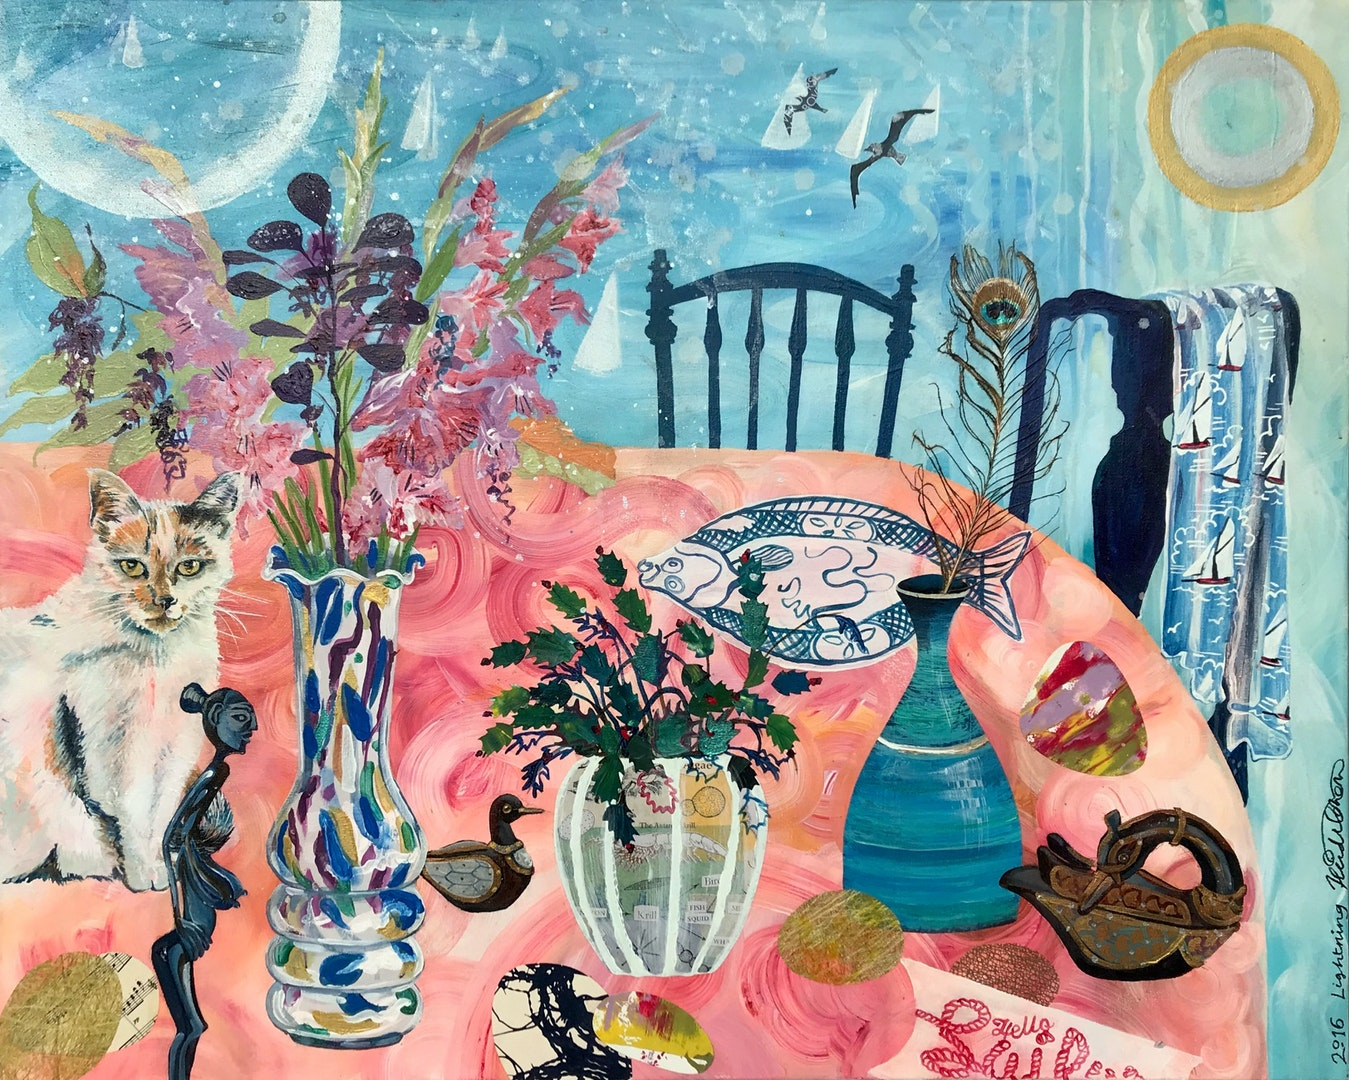 'Still Life Selfie Lightning', Heidi Cohen, Acrylic & collage on canvas, 91.5 x 81 cm